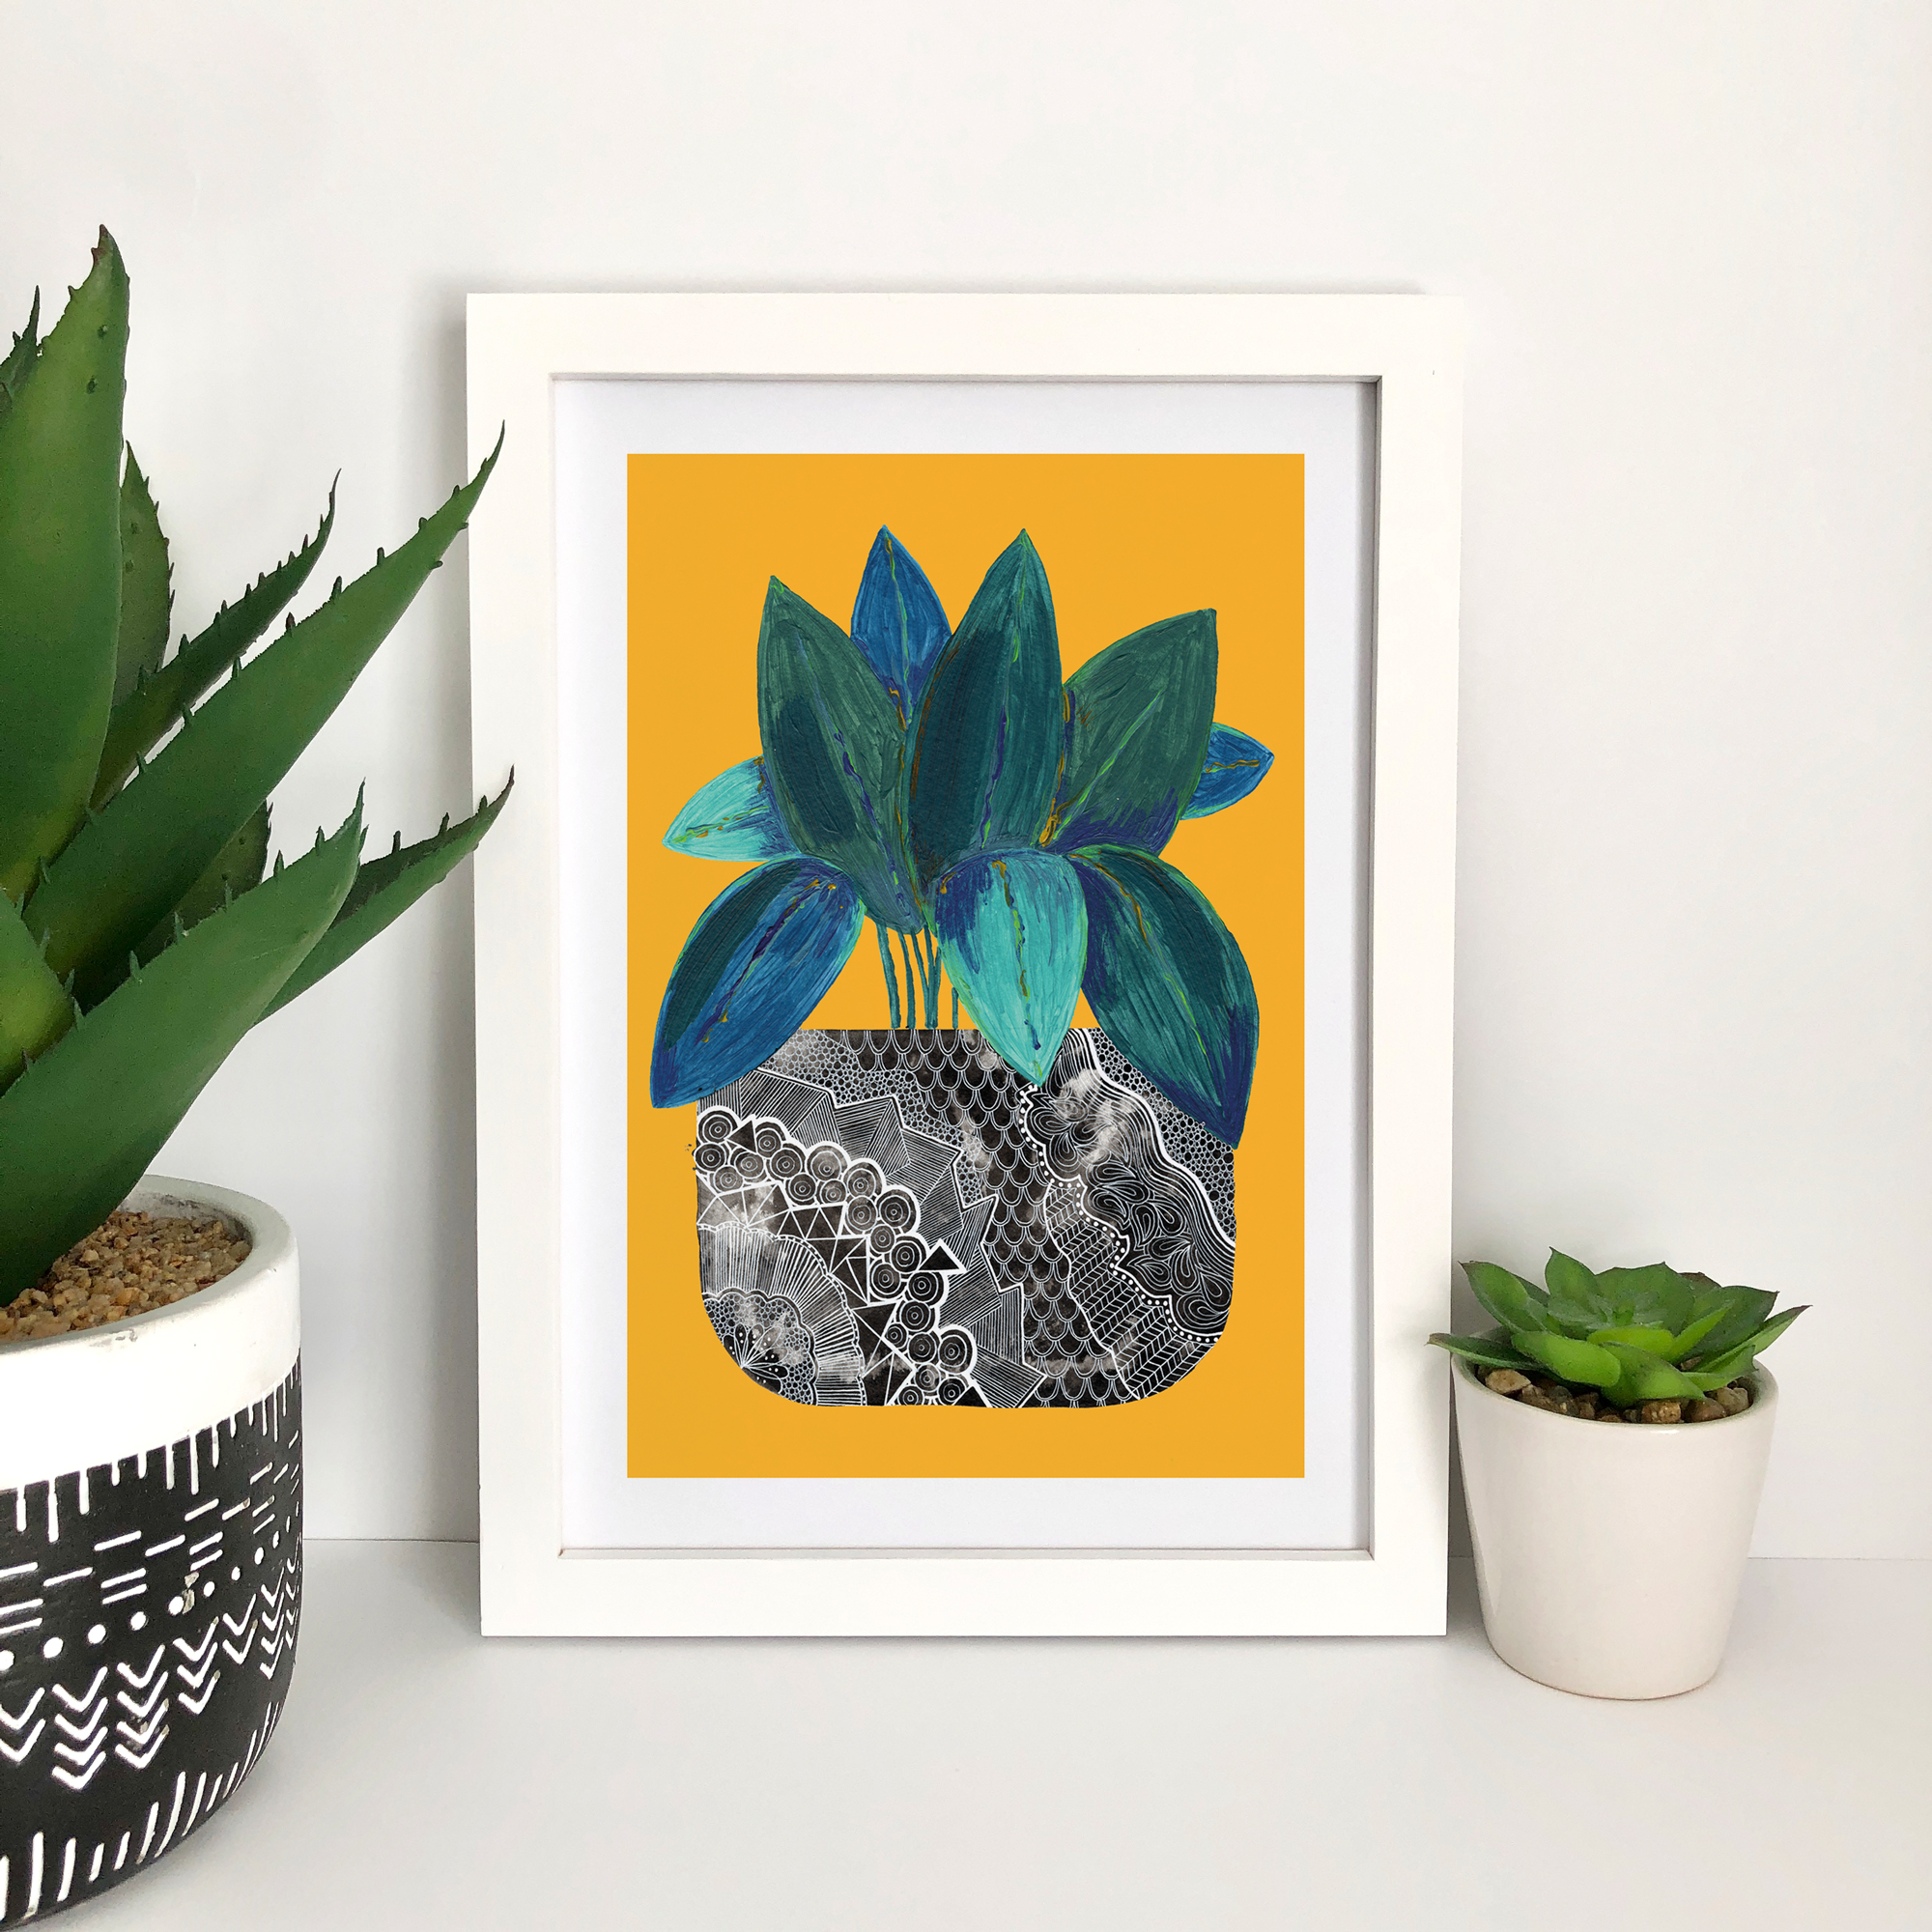 These fun illustrated house plant art prints are available in A4 and A5 and feature painted foliage and a zentangle inspired patterned plant pot.